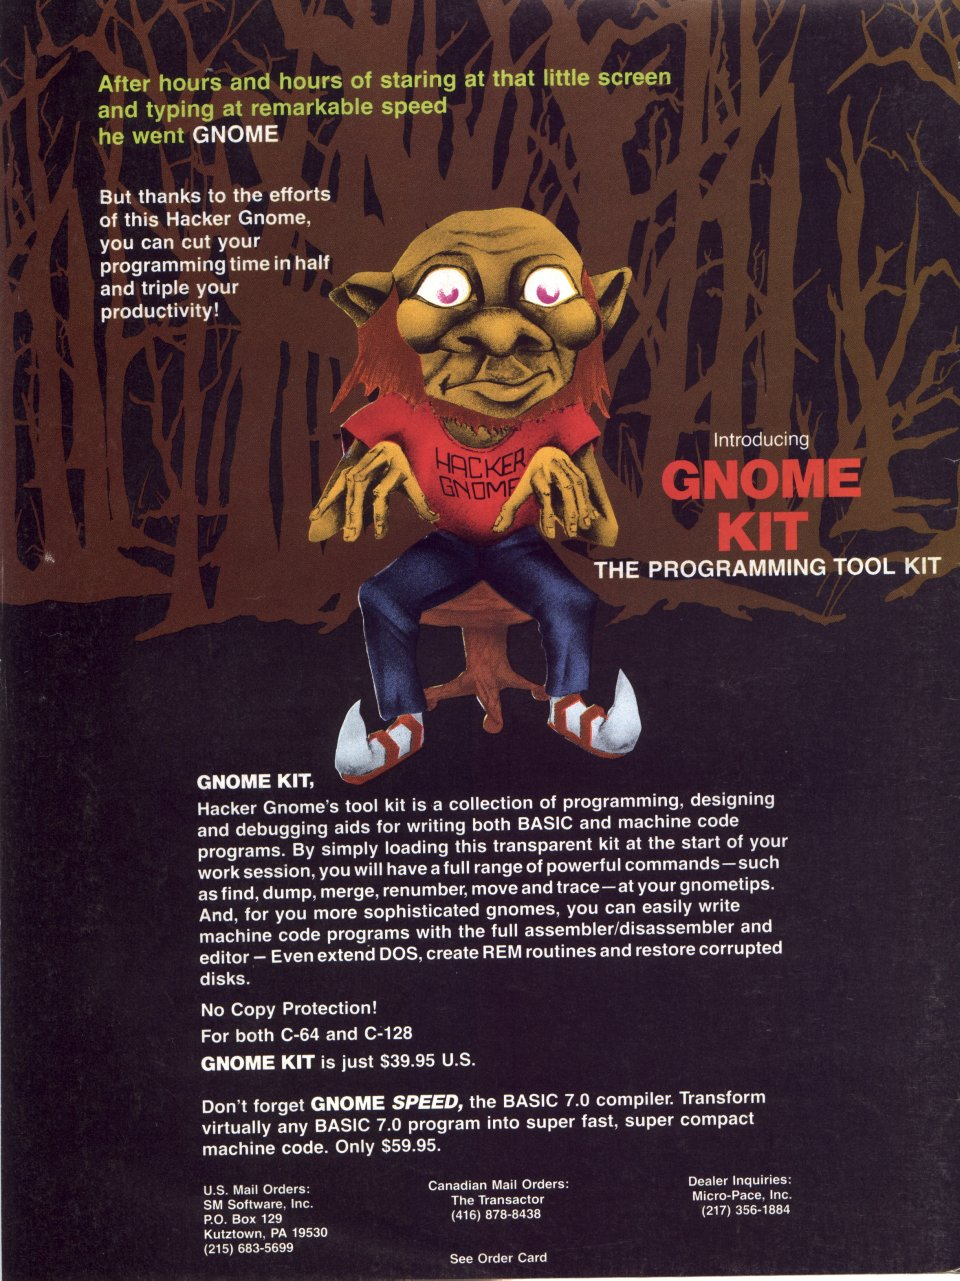 [Advertisement: GNOME Kit (programming, designing and debugging aids for BASIC and machine language programming) by SM Software, Inc.]